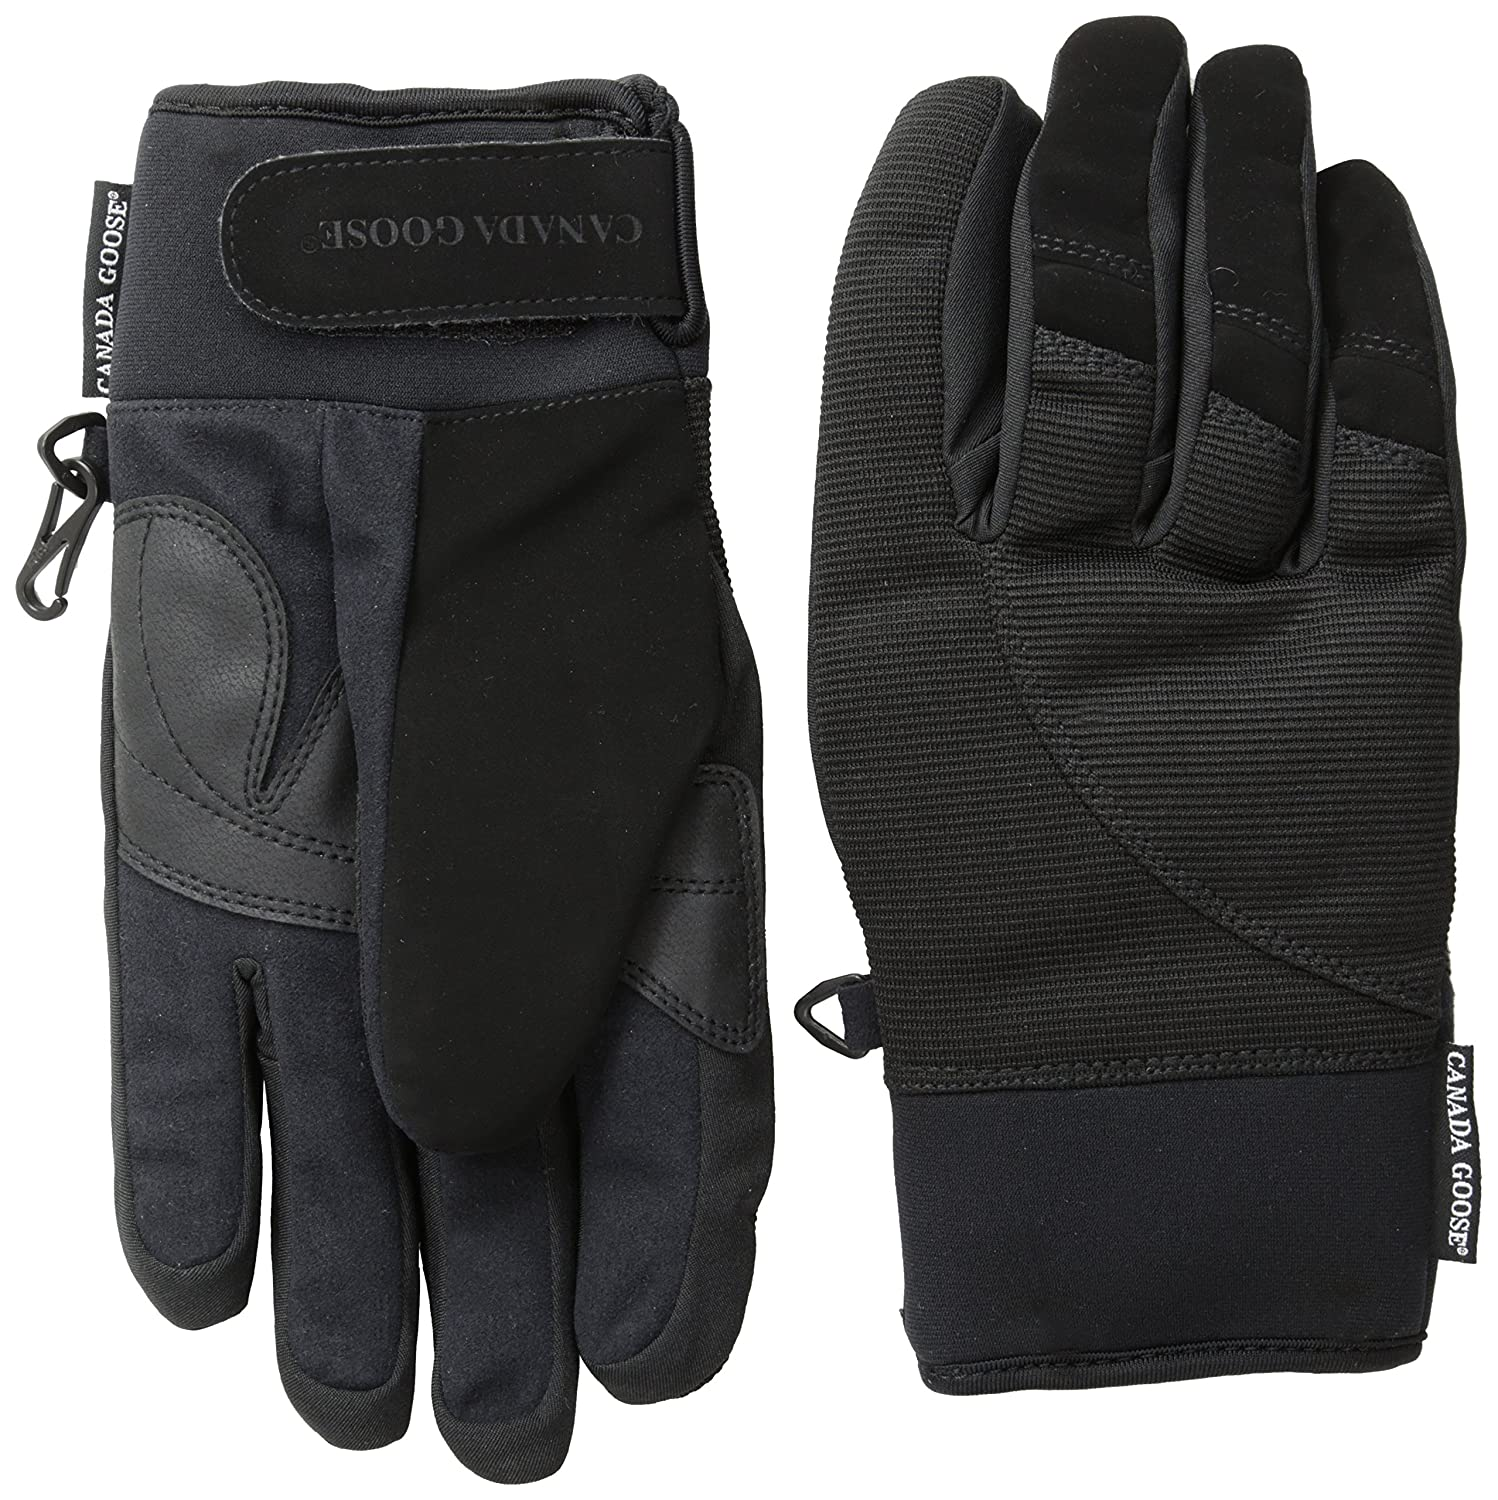 Canada Goose Driving Gloves Uk